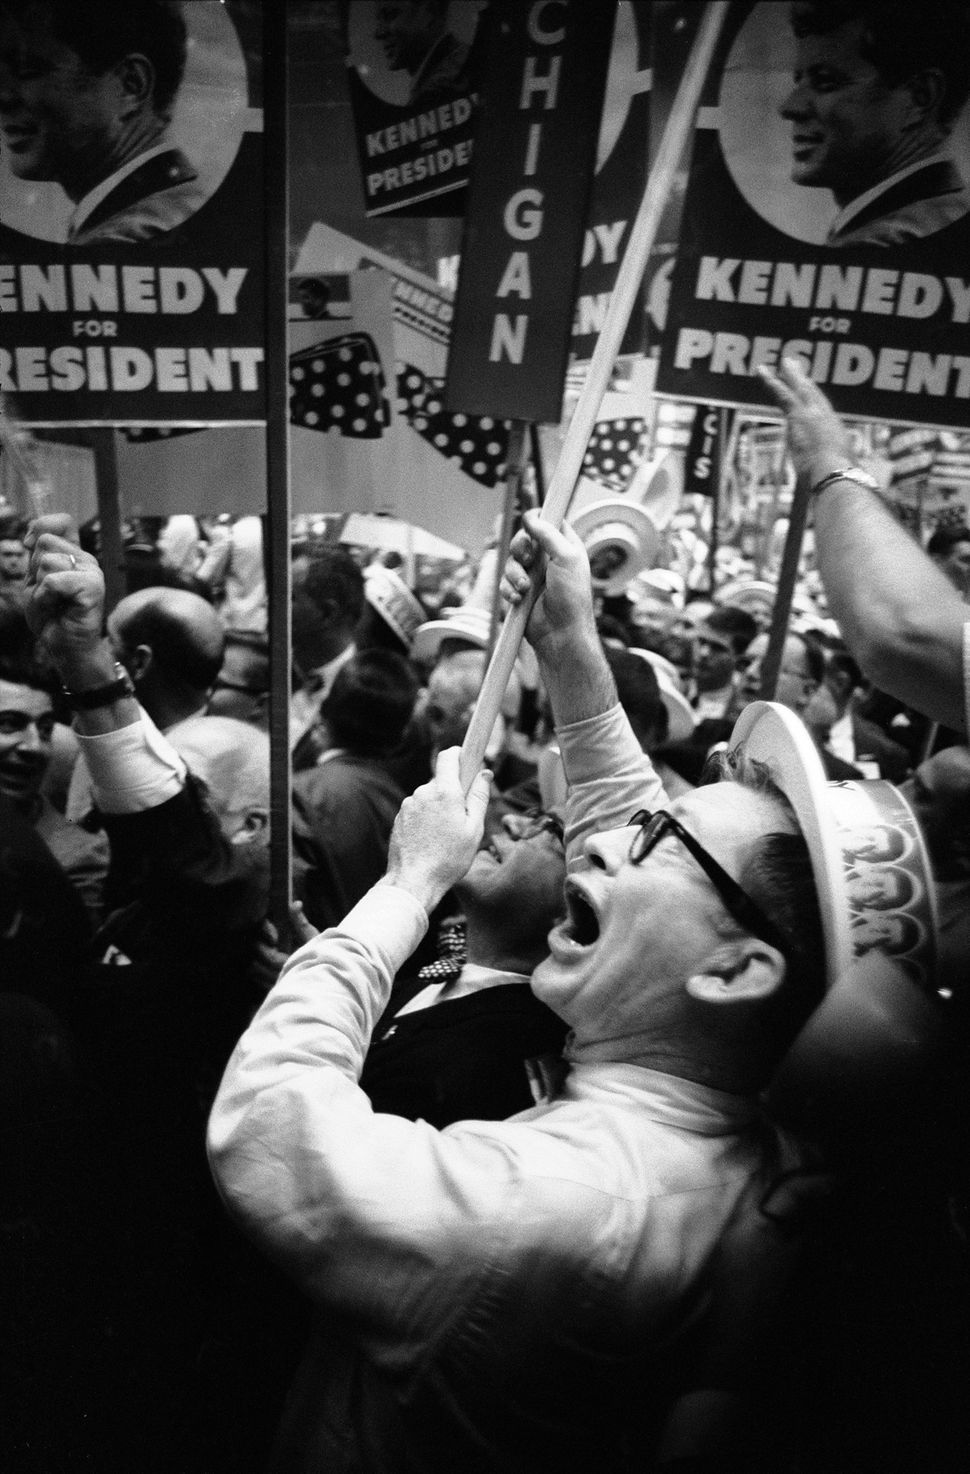 At the Democratic National Convention, delegates cheer in support of presidential candidate John F. Kennedy.